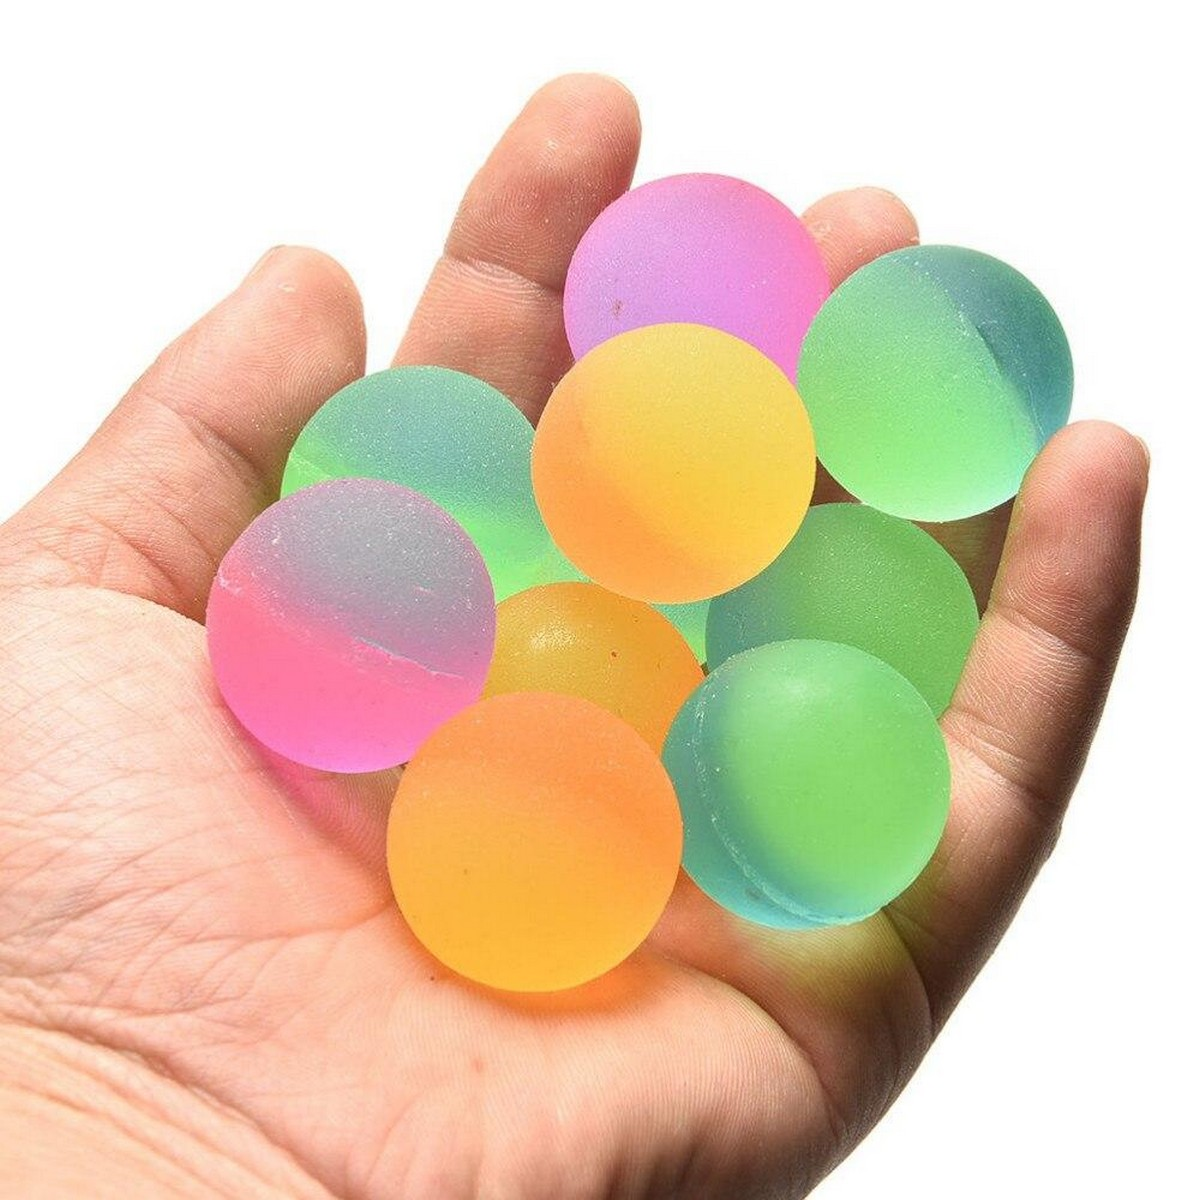 10PCS High Bouncing Balls – For Kids Boys And Girls Great Party Favors, Bag Stuffers, Fun, Toy, Gift